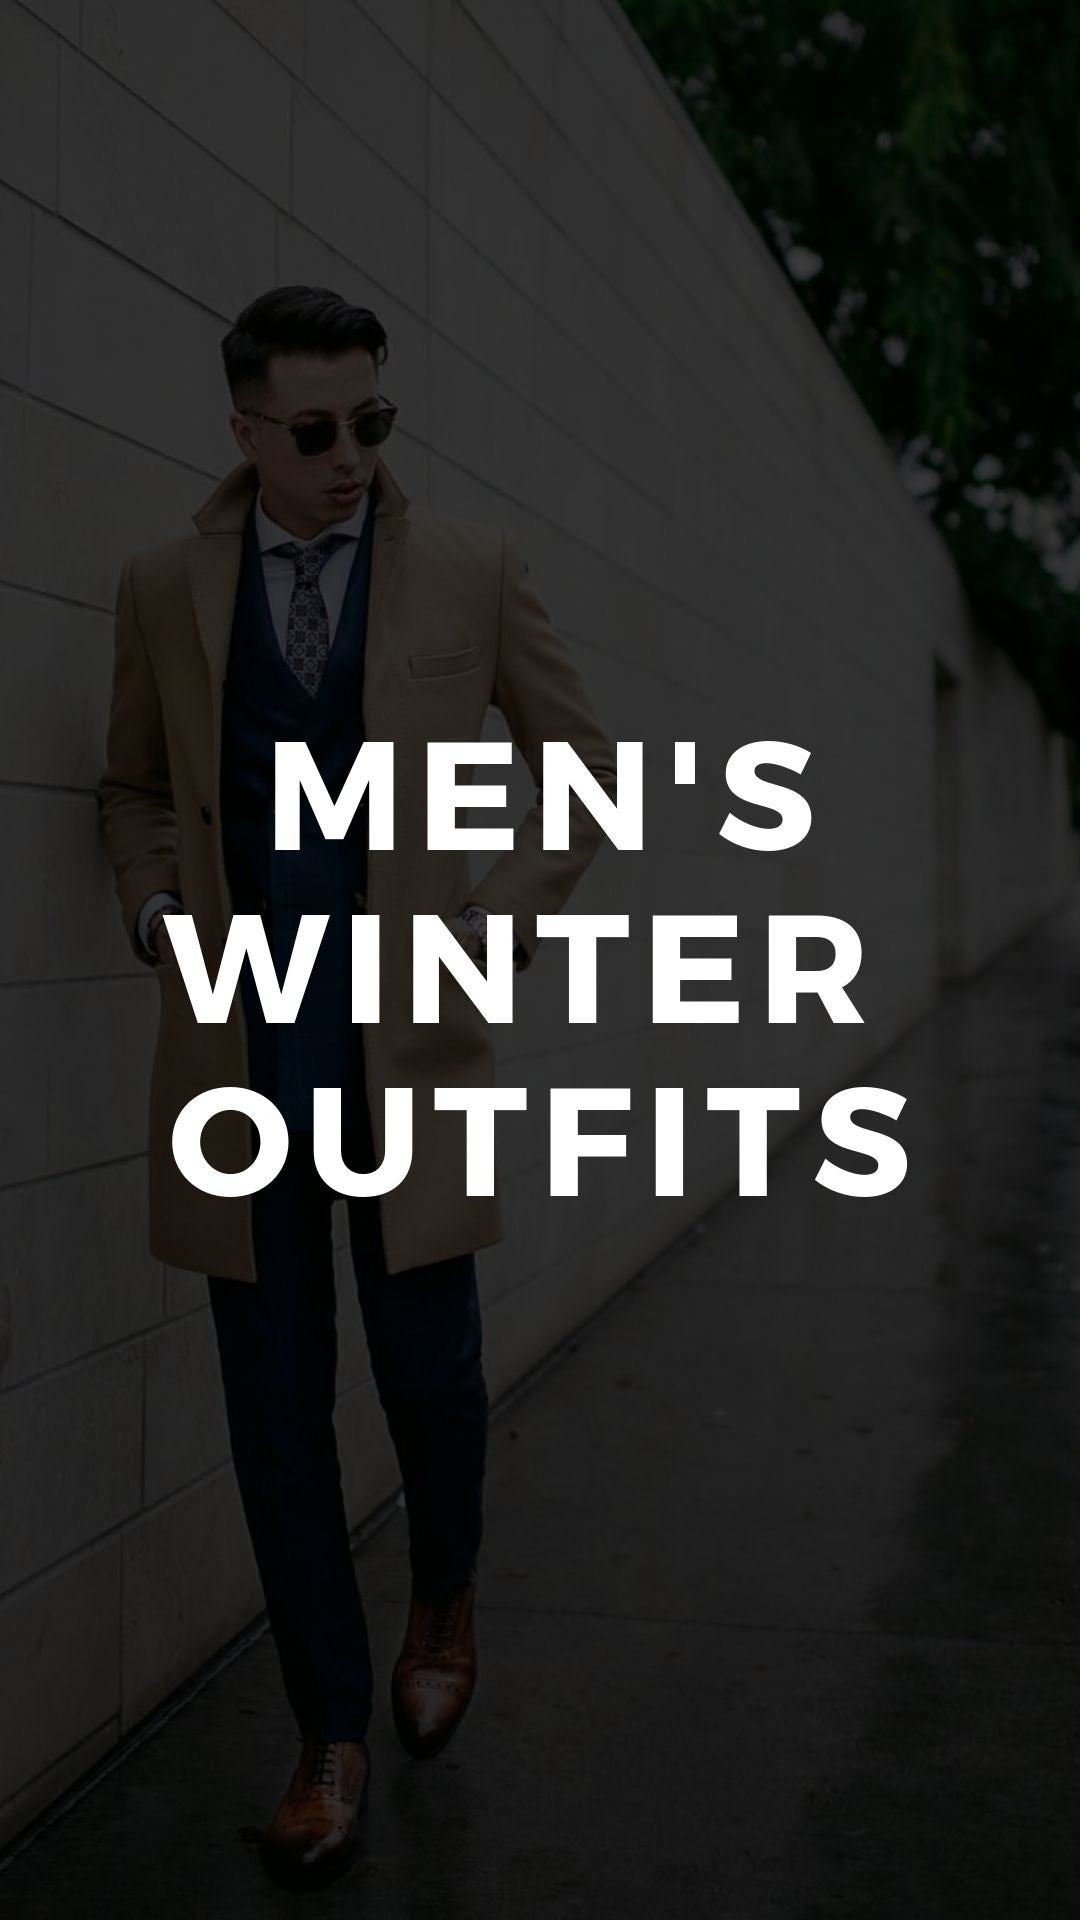 6 Raddest Winter Street Looks You Can Steal #winterstyle #mensfashion #fallfashion